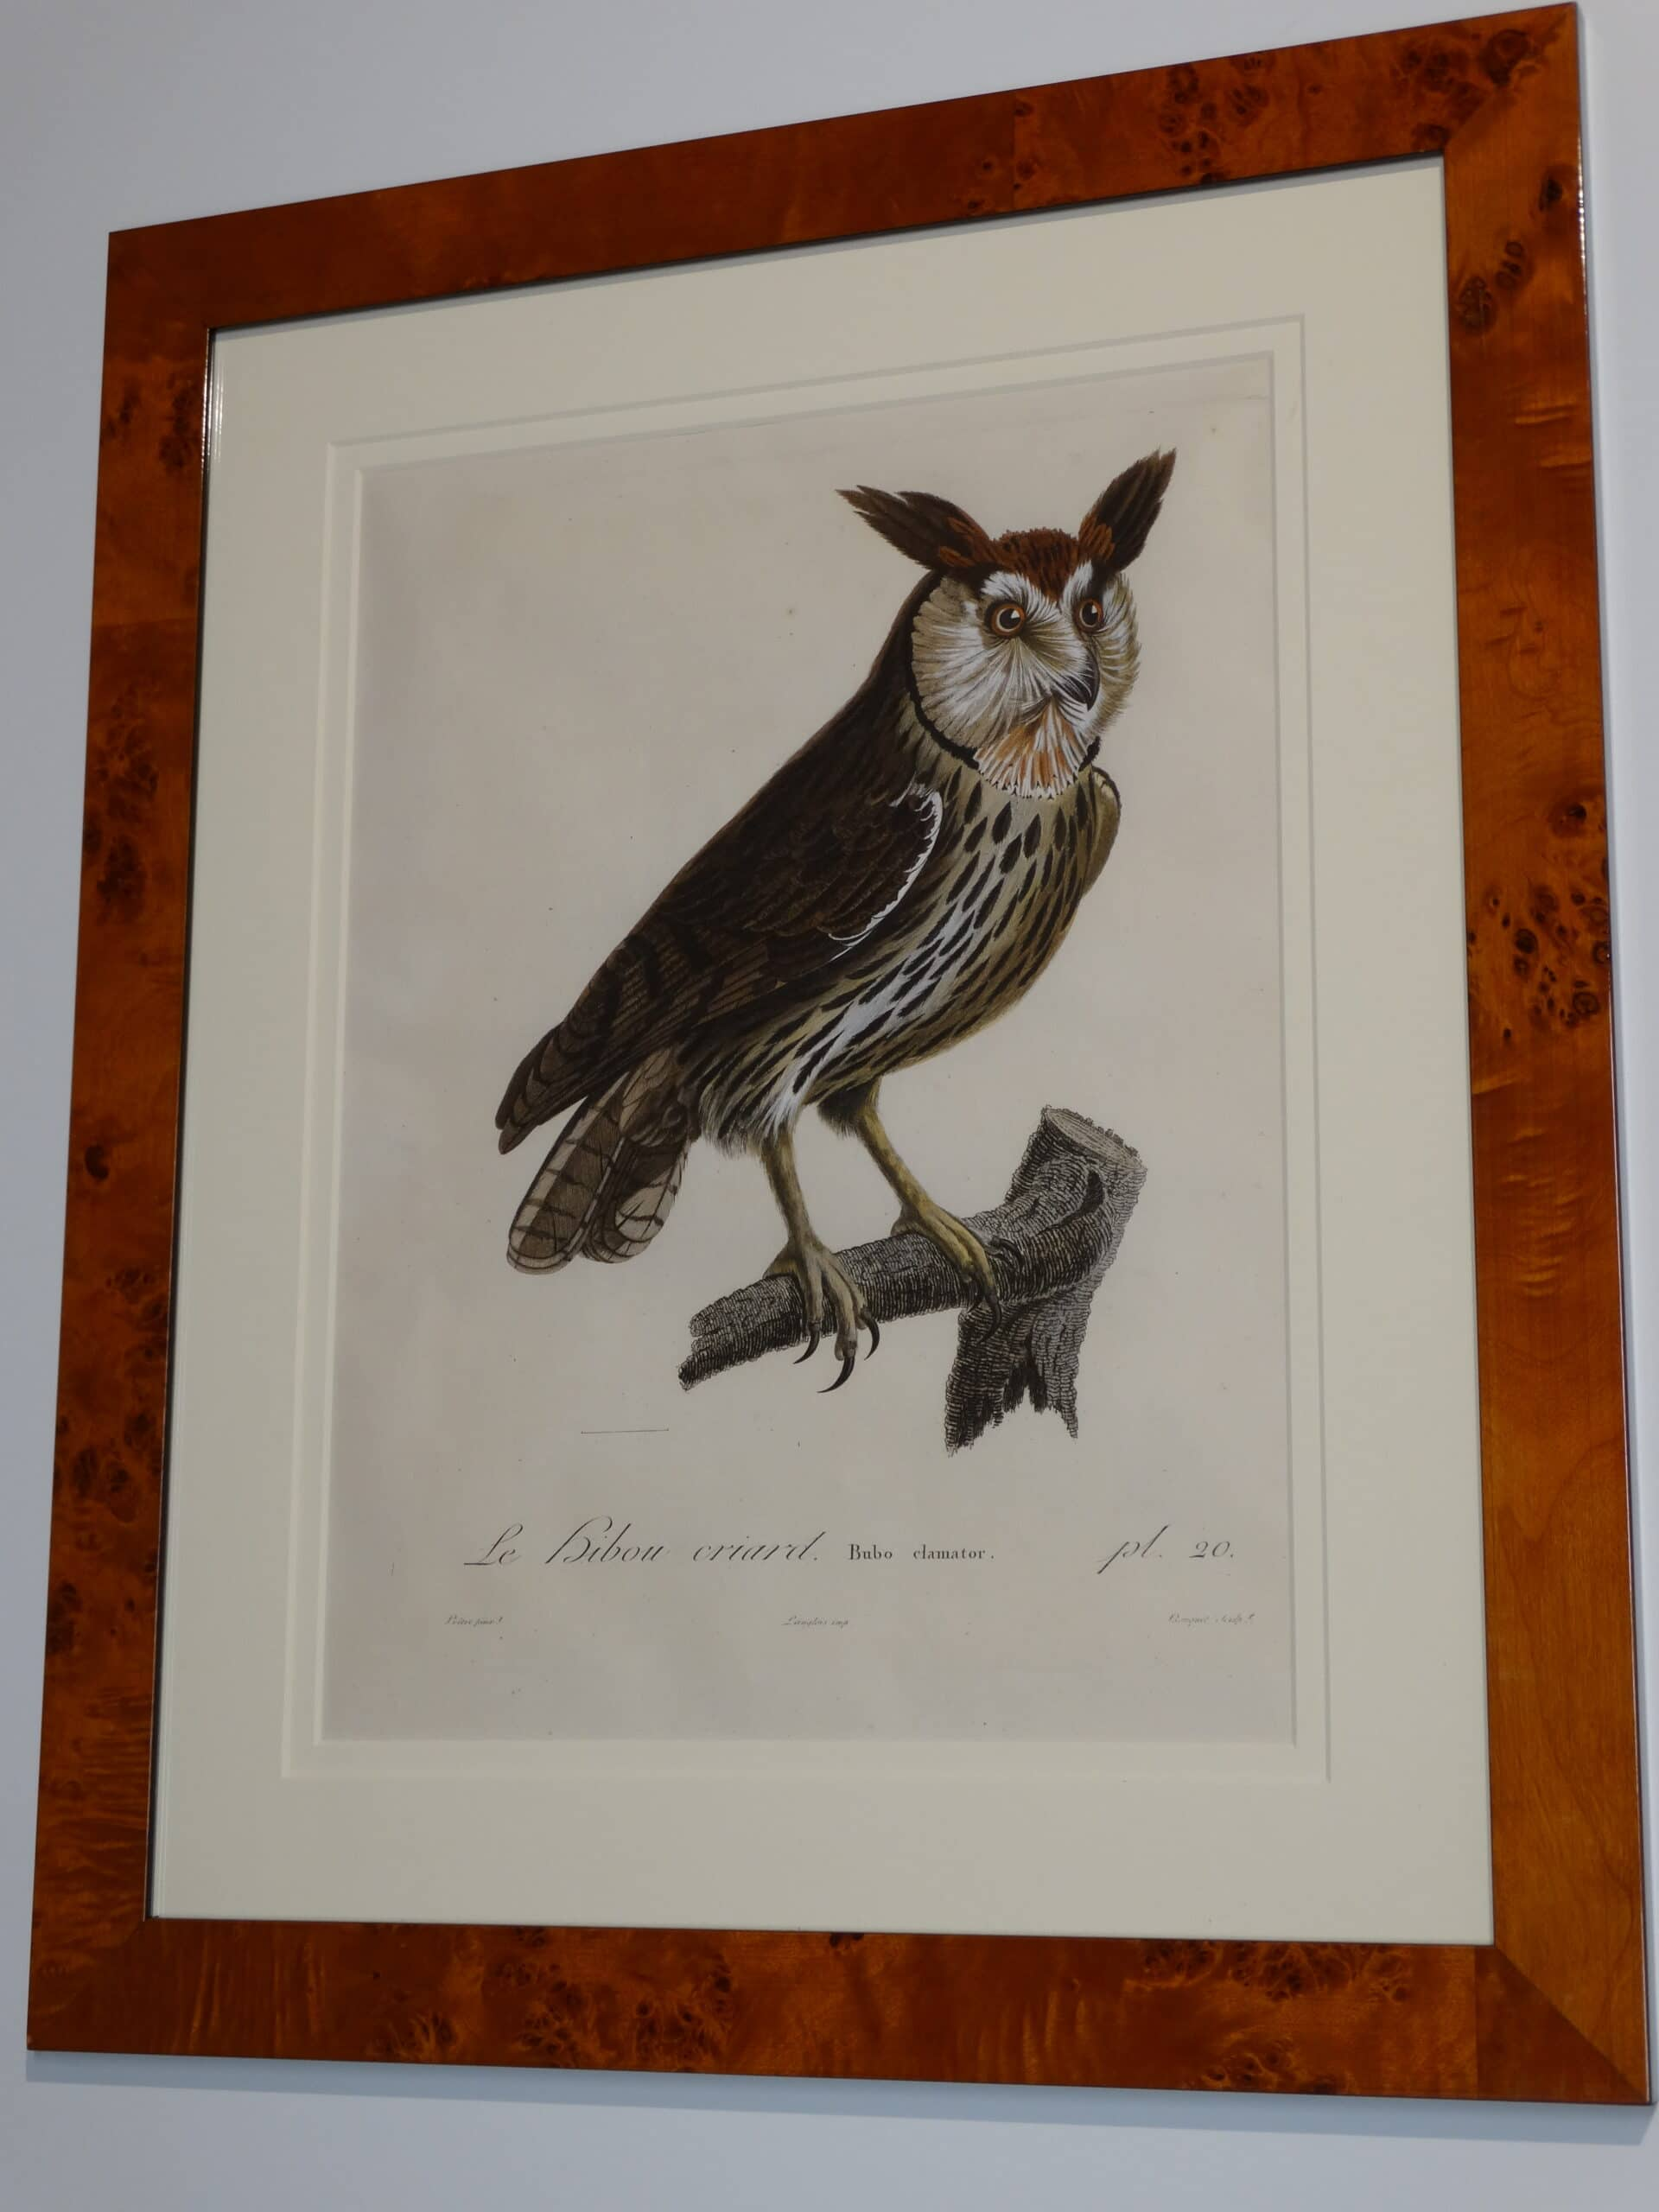 Spectacular 18th century hand colored engraving of Eagle Owl.